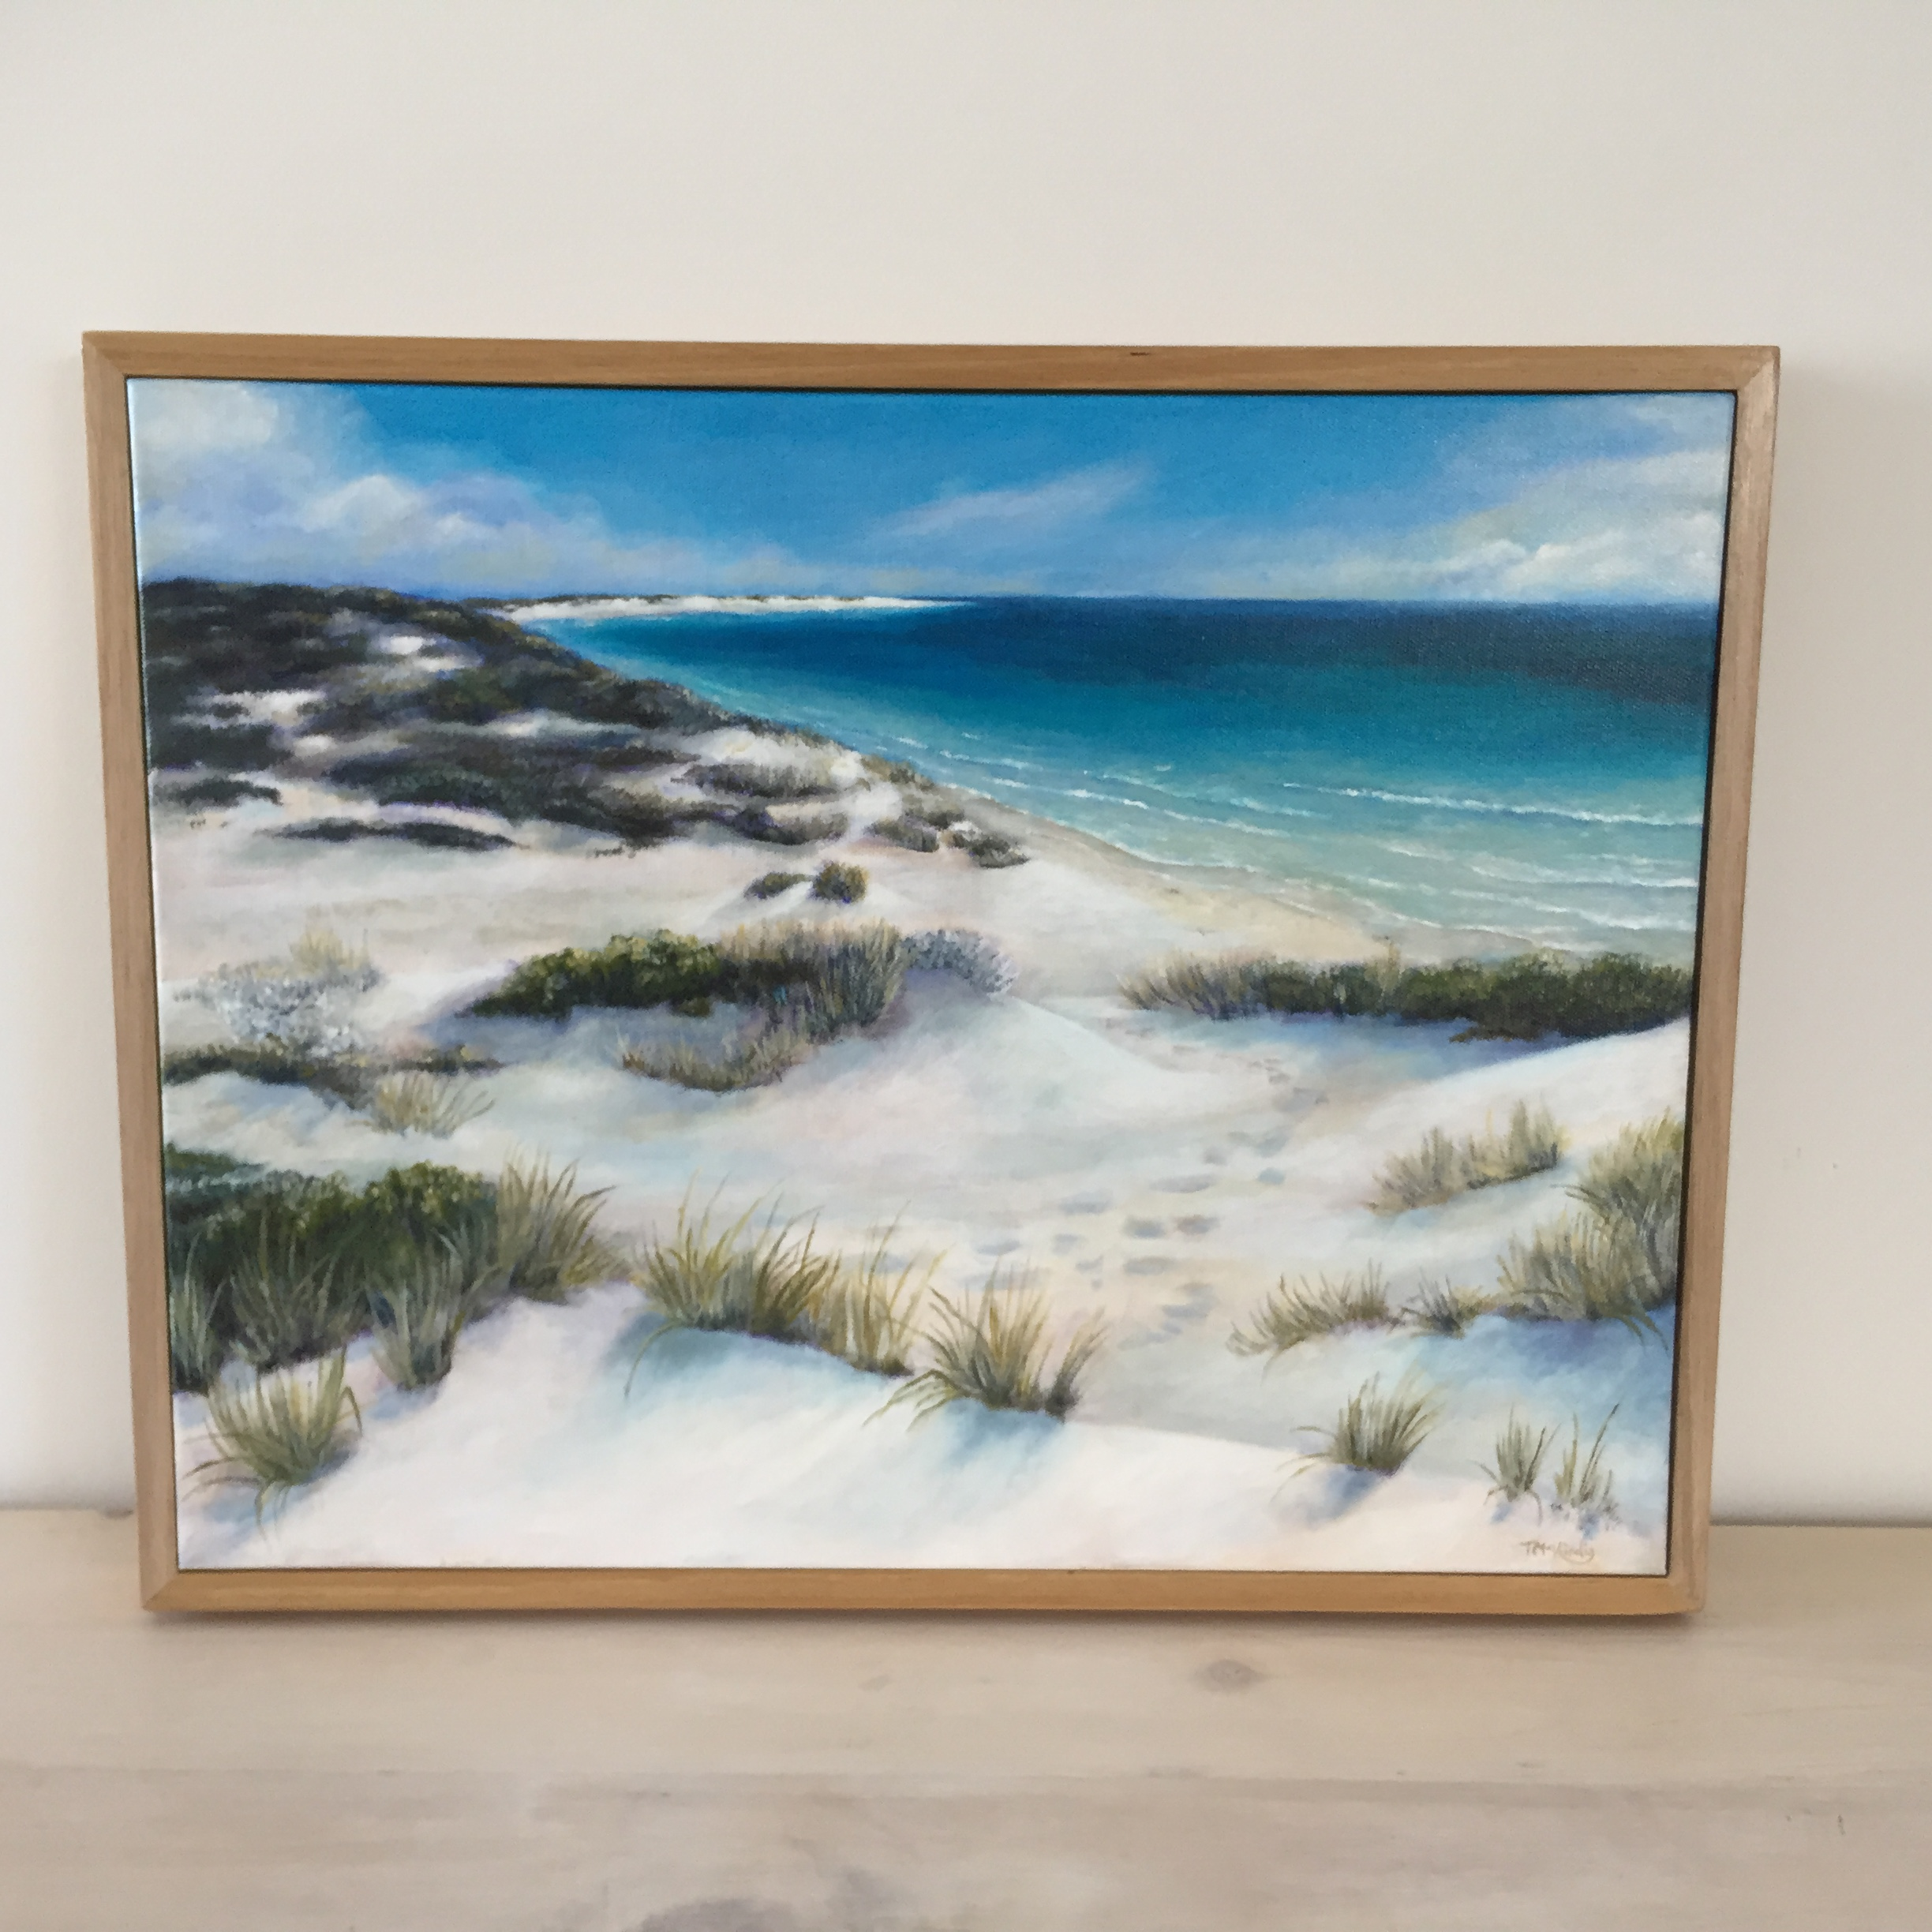 View from the Dunes - SOLDAcrylic on gallery wrapped canvas. Australian oak frame.450 x 360mm